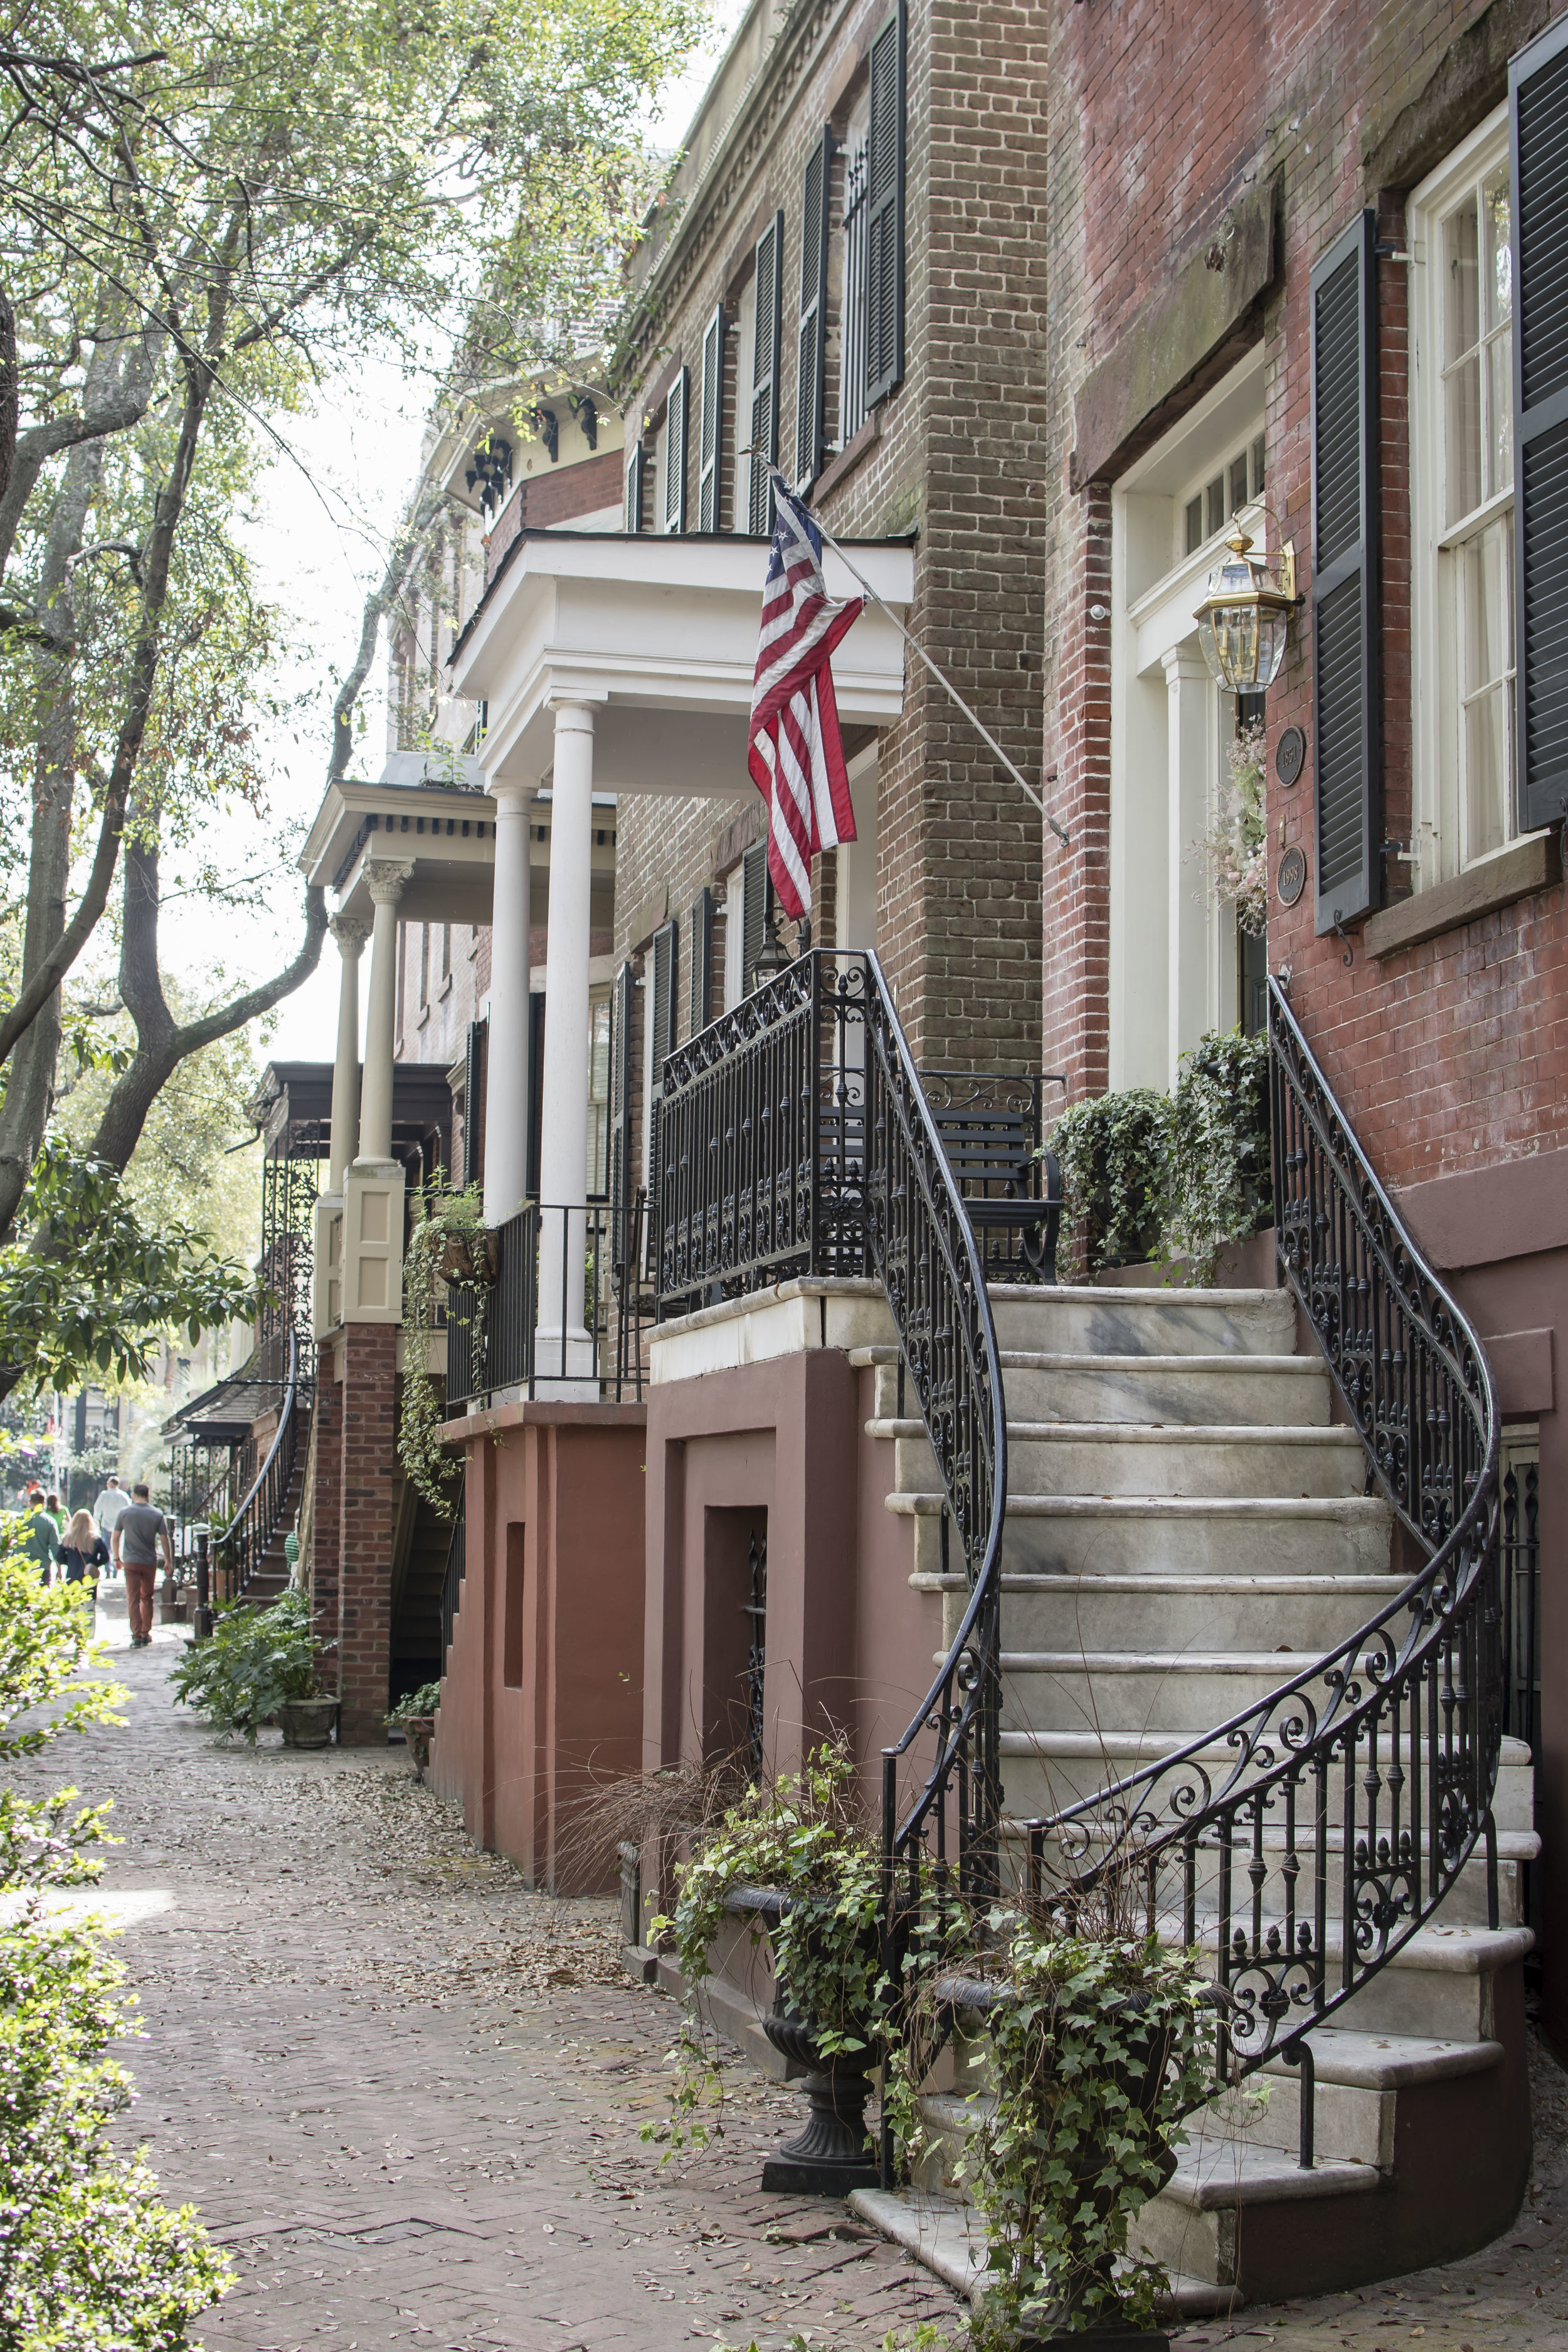 Did You Know? Jones Street was voted one of the most beautiful streets in North America by Southern Living. And it truly is!